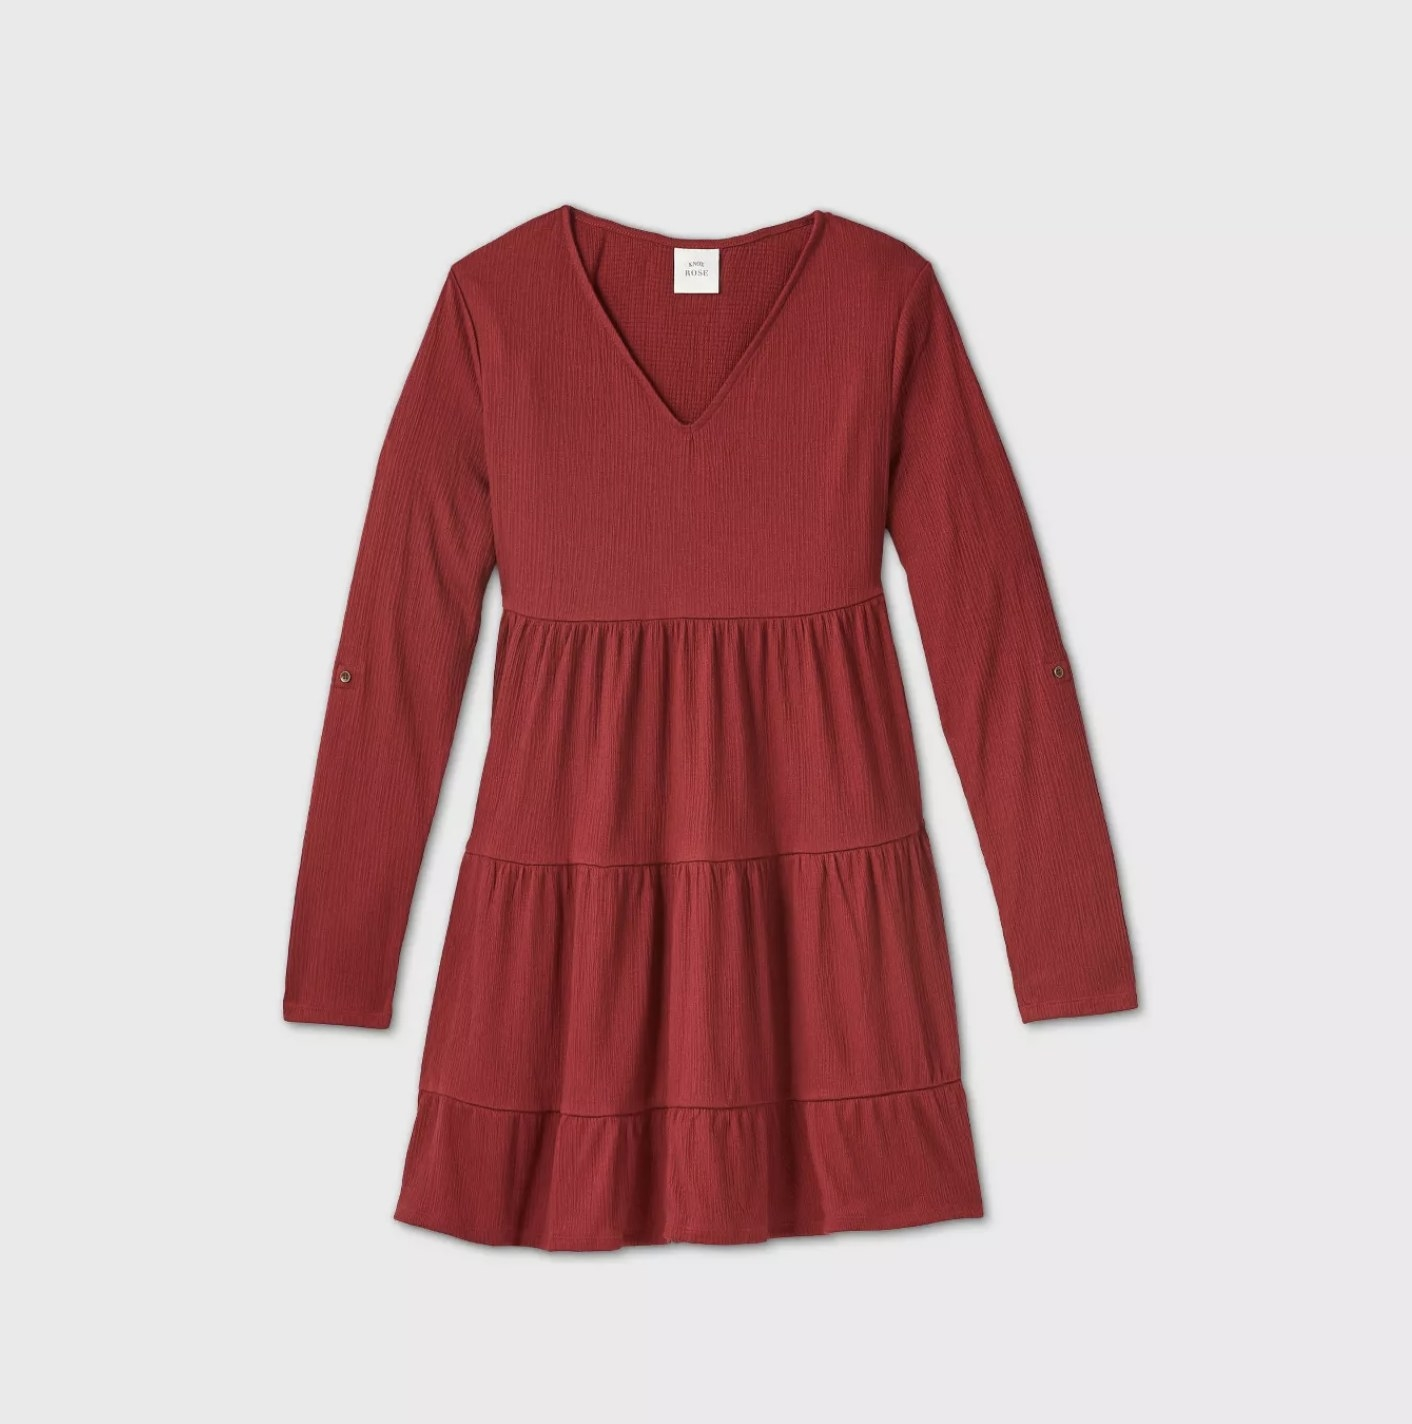 A burnt red tiered midi dress with long sleeves and a v-neckline